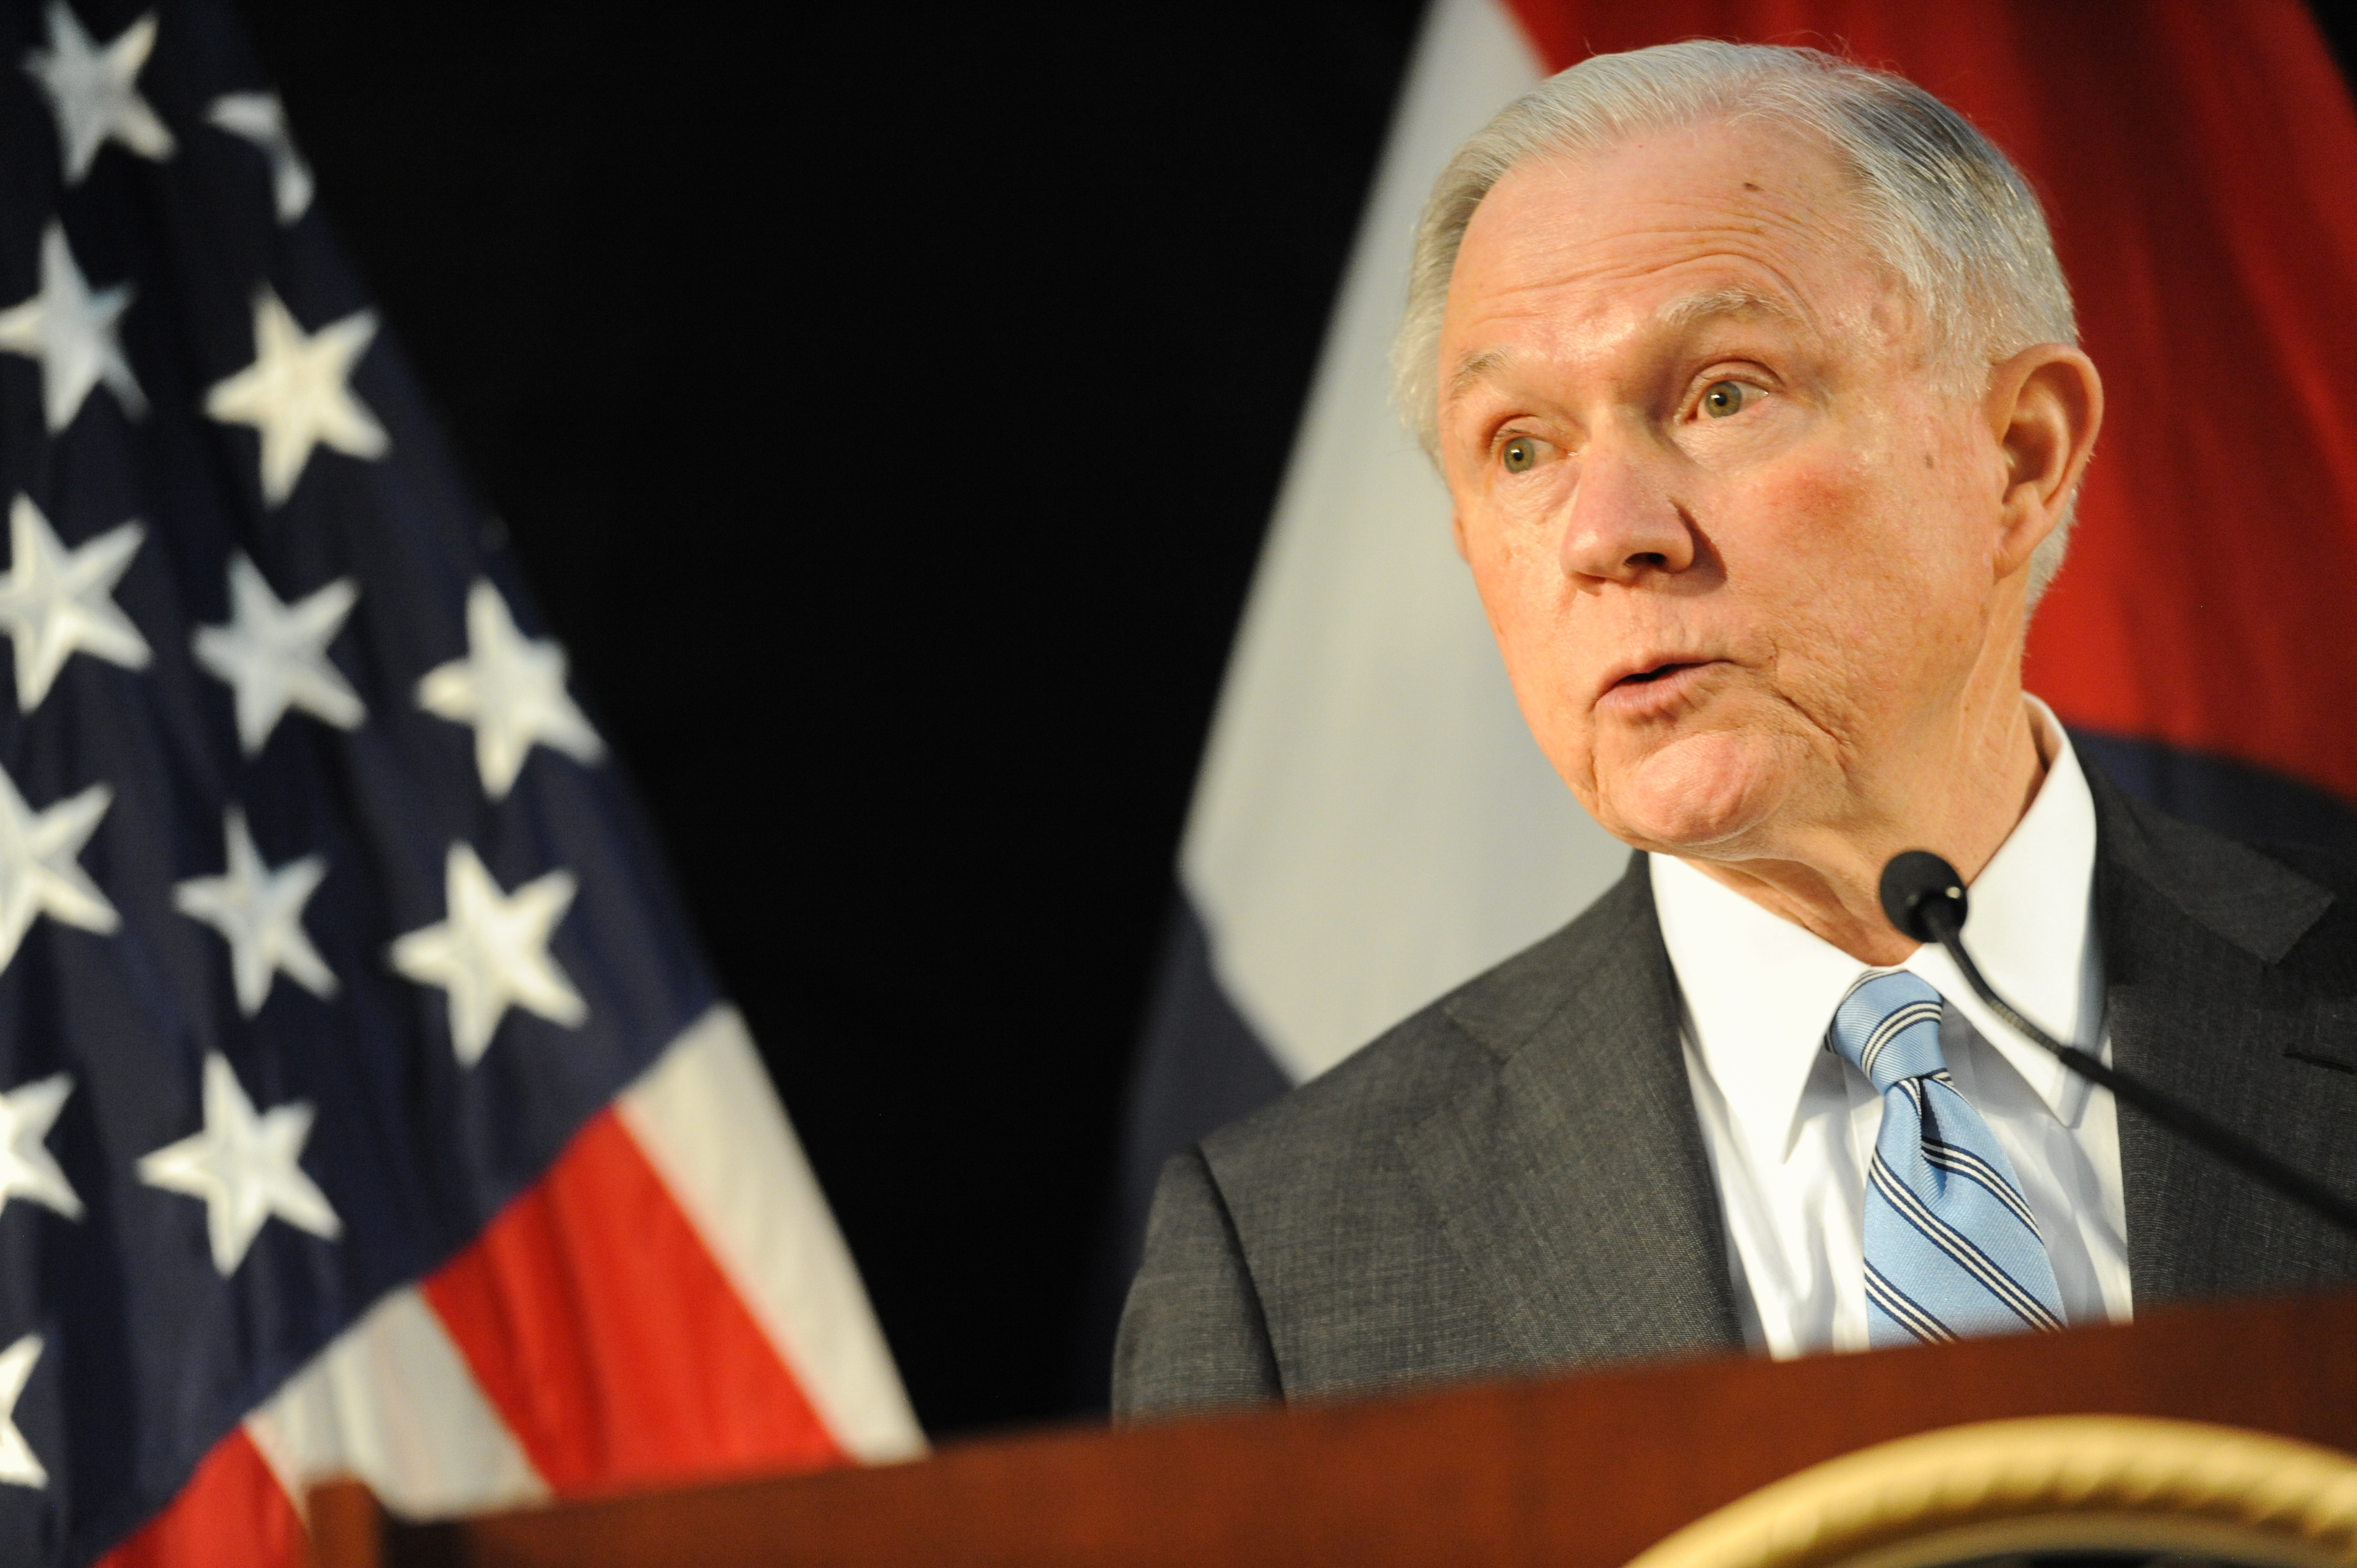 U.S. Attorney General Jeff Sessions addresses law enforcement members on March 31, 2017 in St. Louis, Missouri.